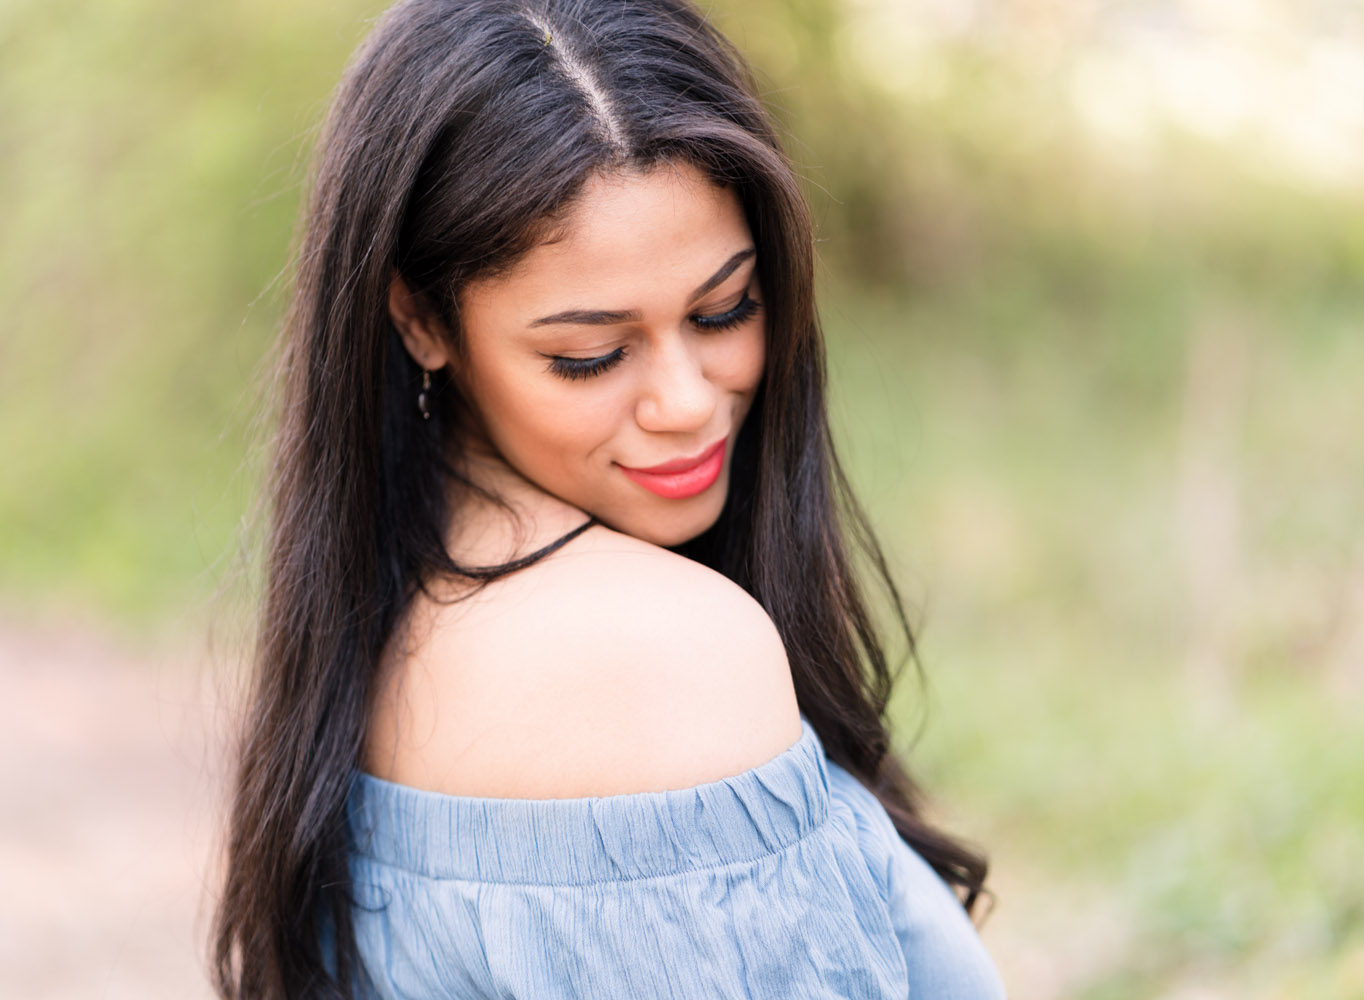 kaiserslautern Ramstein KMC Photographer beauty and portrait photography in Reichenbach-Steegen, Rheinland-Pfaly Germany. Beauty Portrait in Spring with beautiful dark hair girl in blue romper close up by Sarah Havens